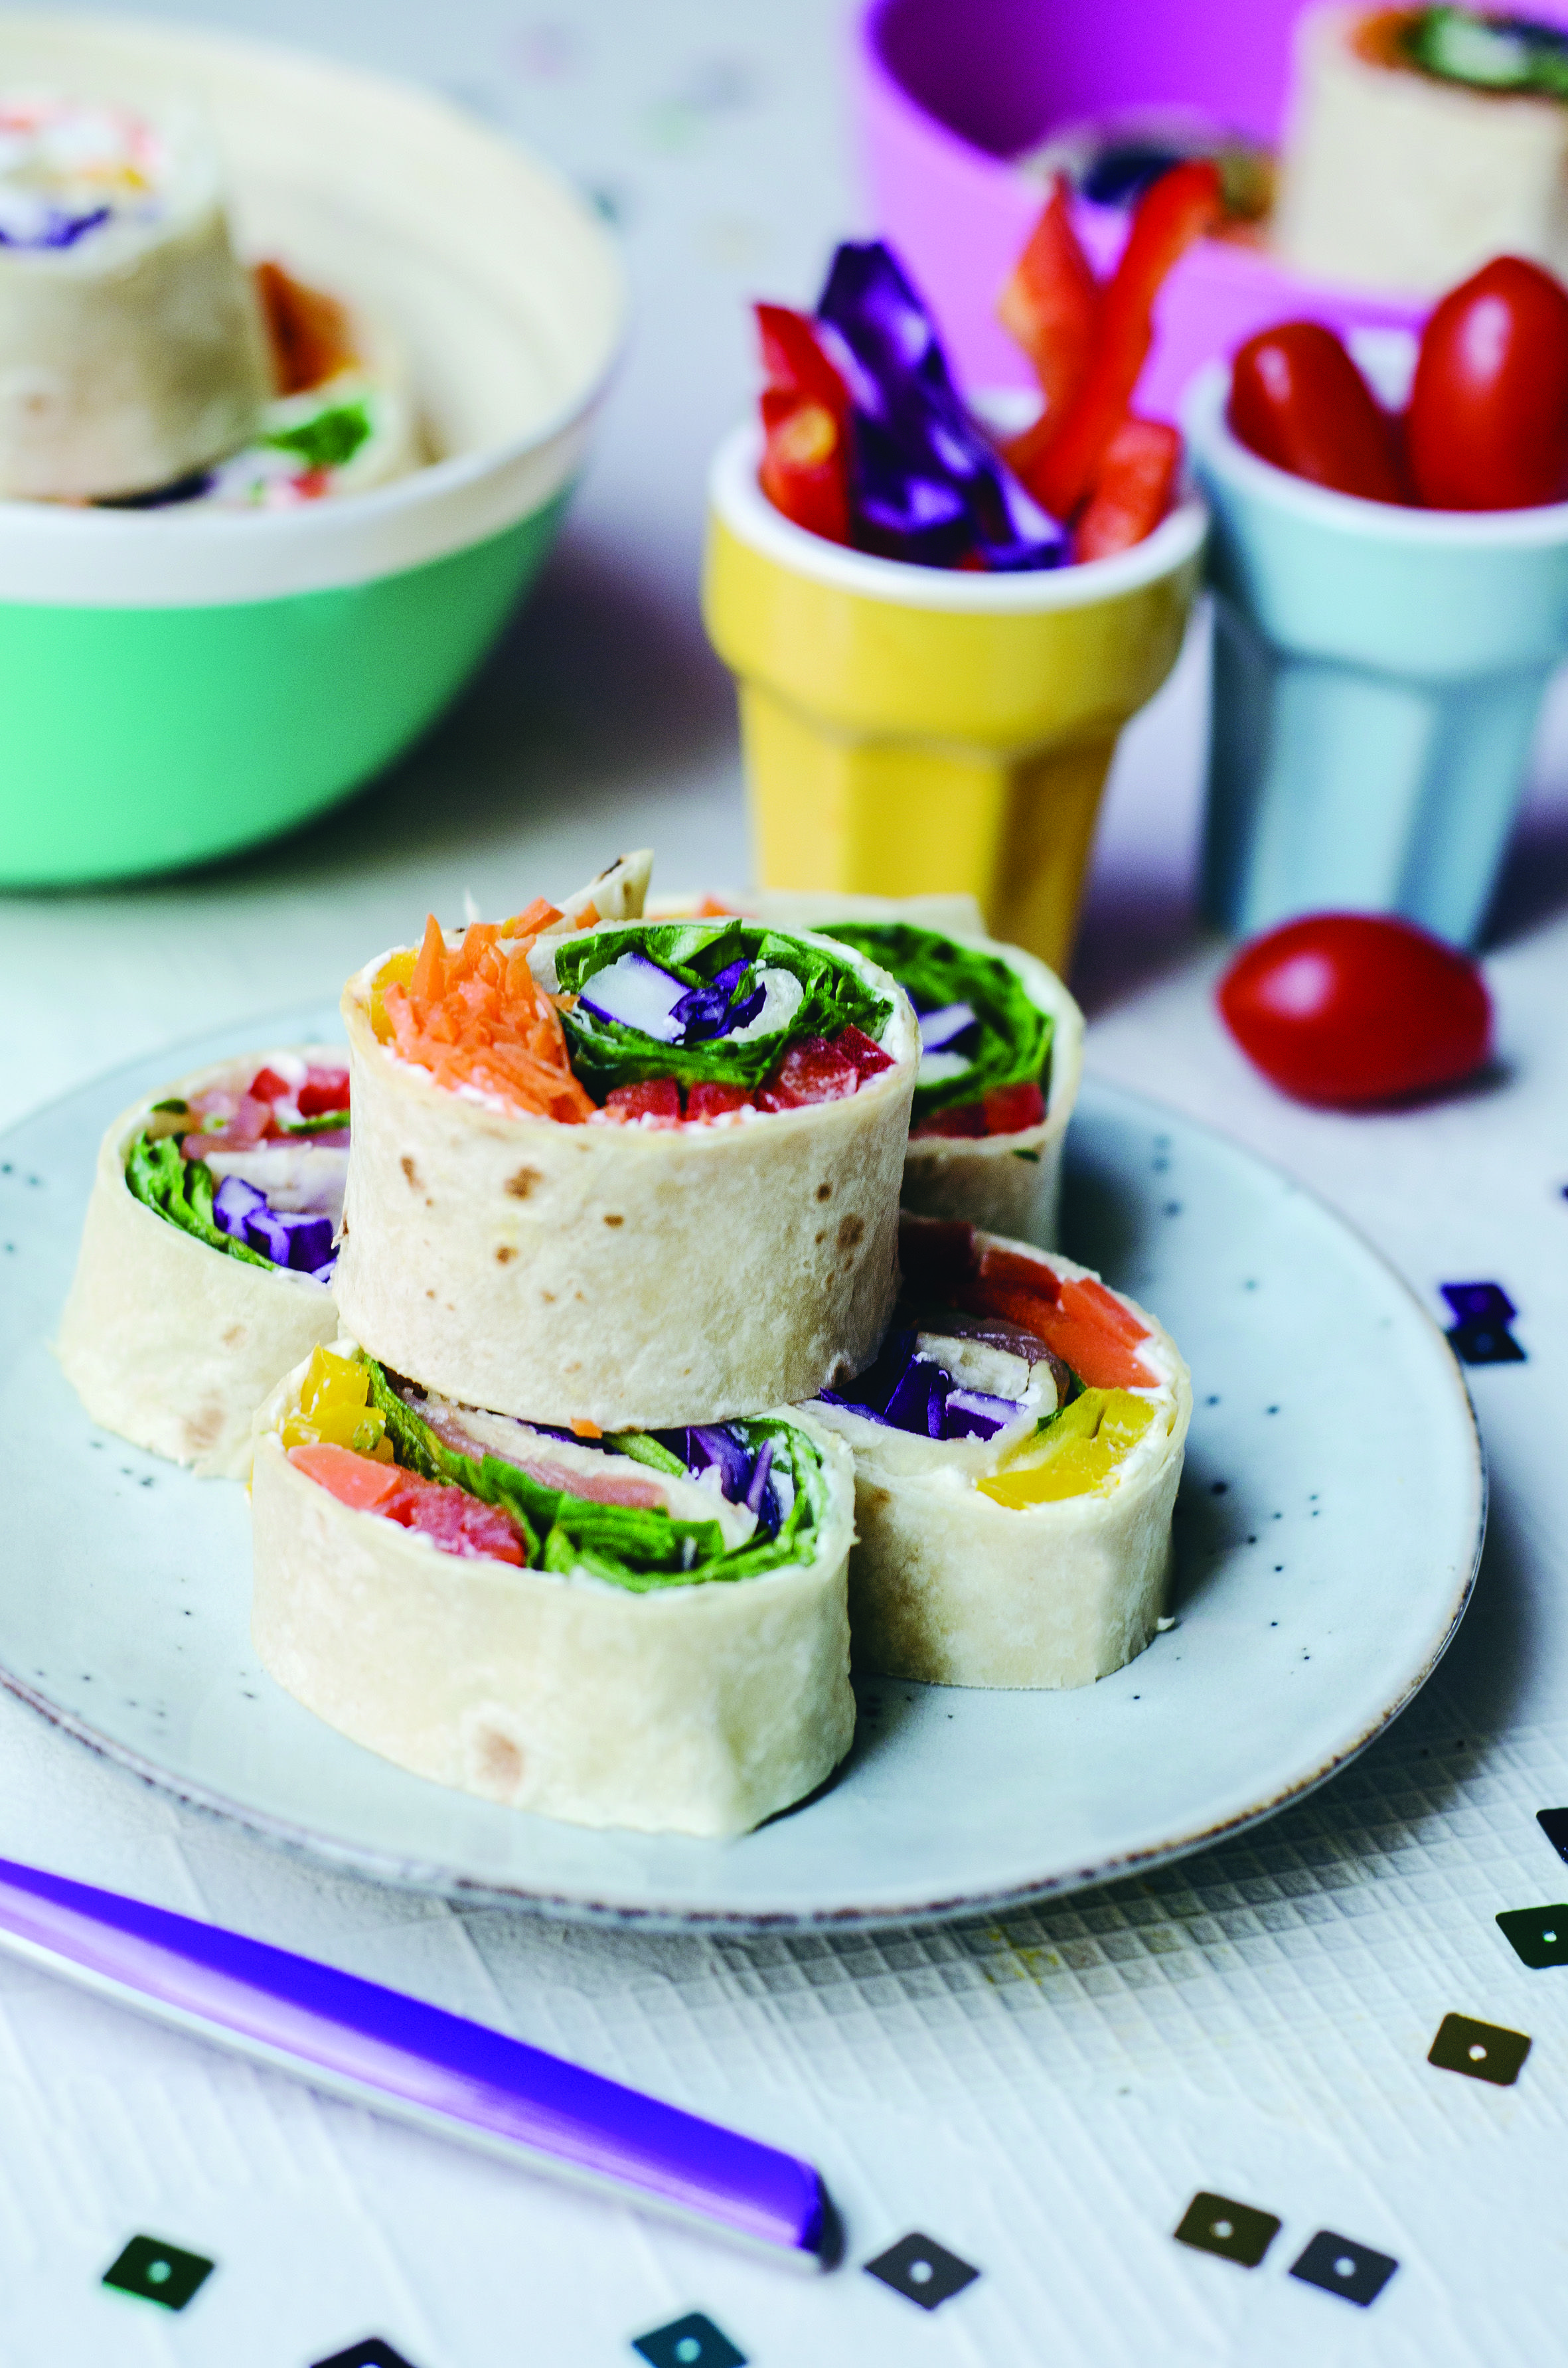 Rainbow pinwheels instead of ending up with rainbows scribbled on a little duo of recipe books filled with ideas on how to include more plants and supercharged foods on little forumfinder Choice Image